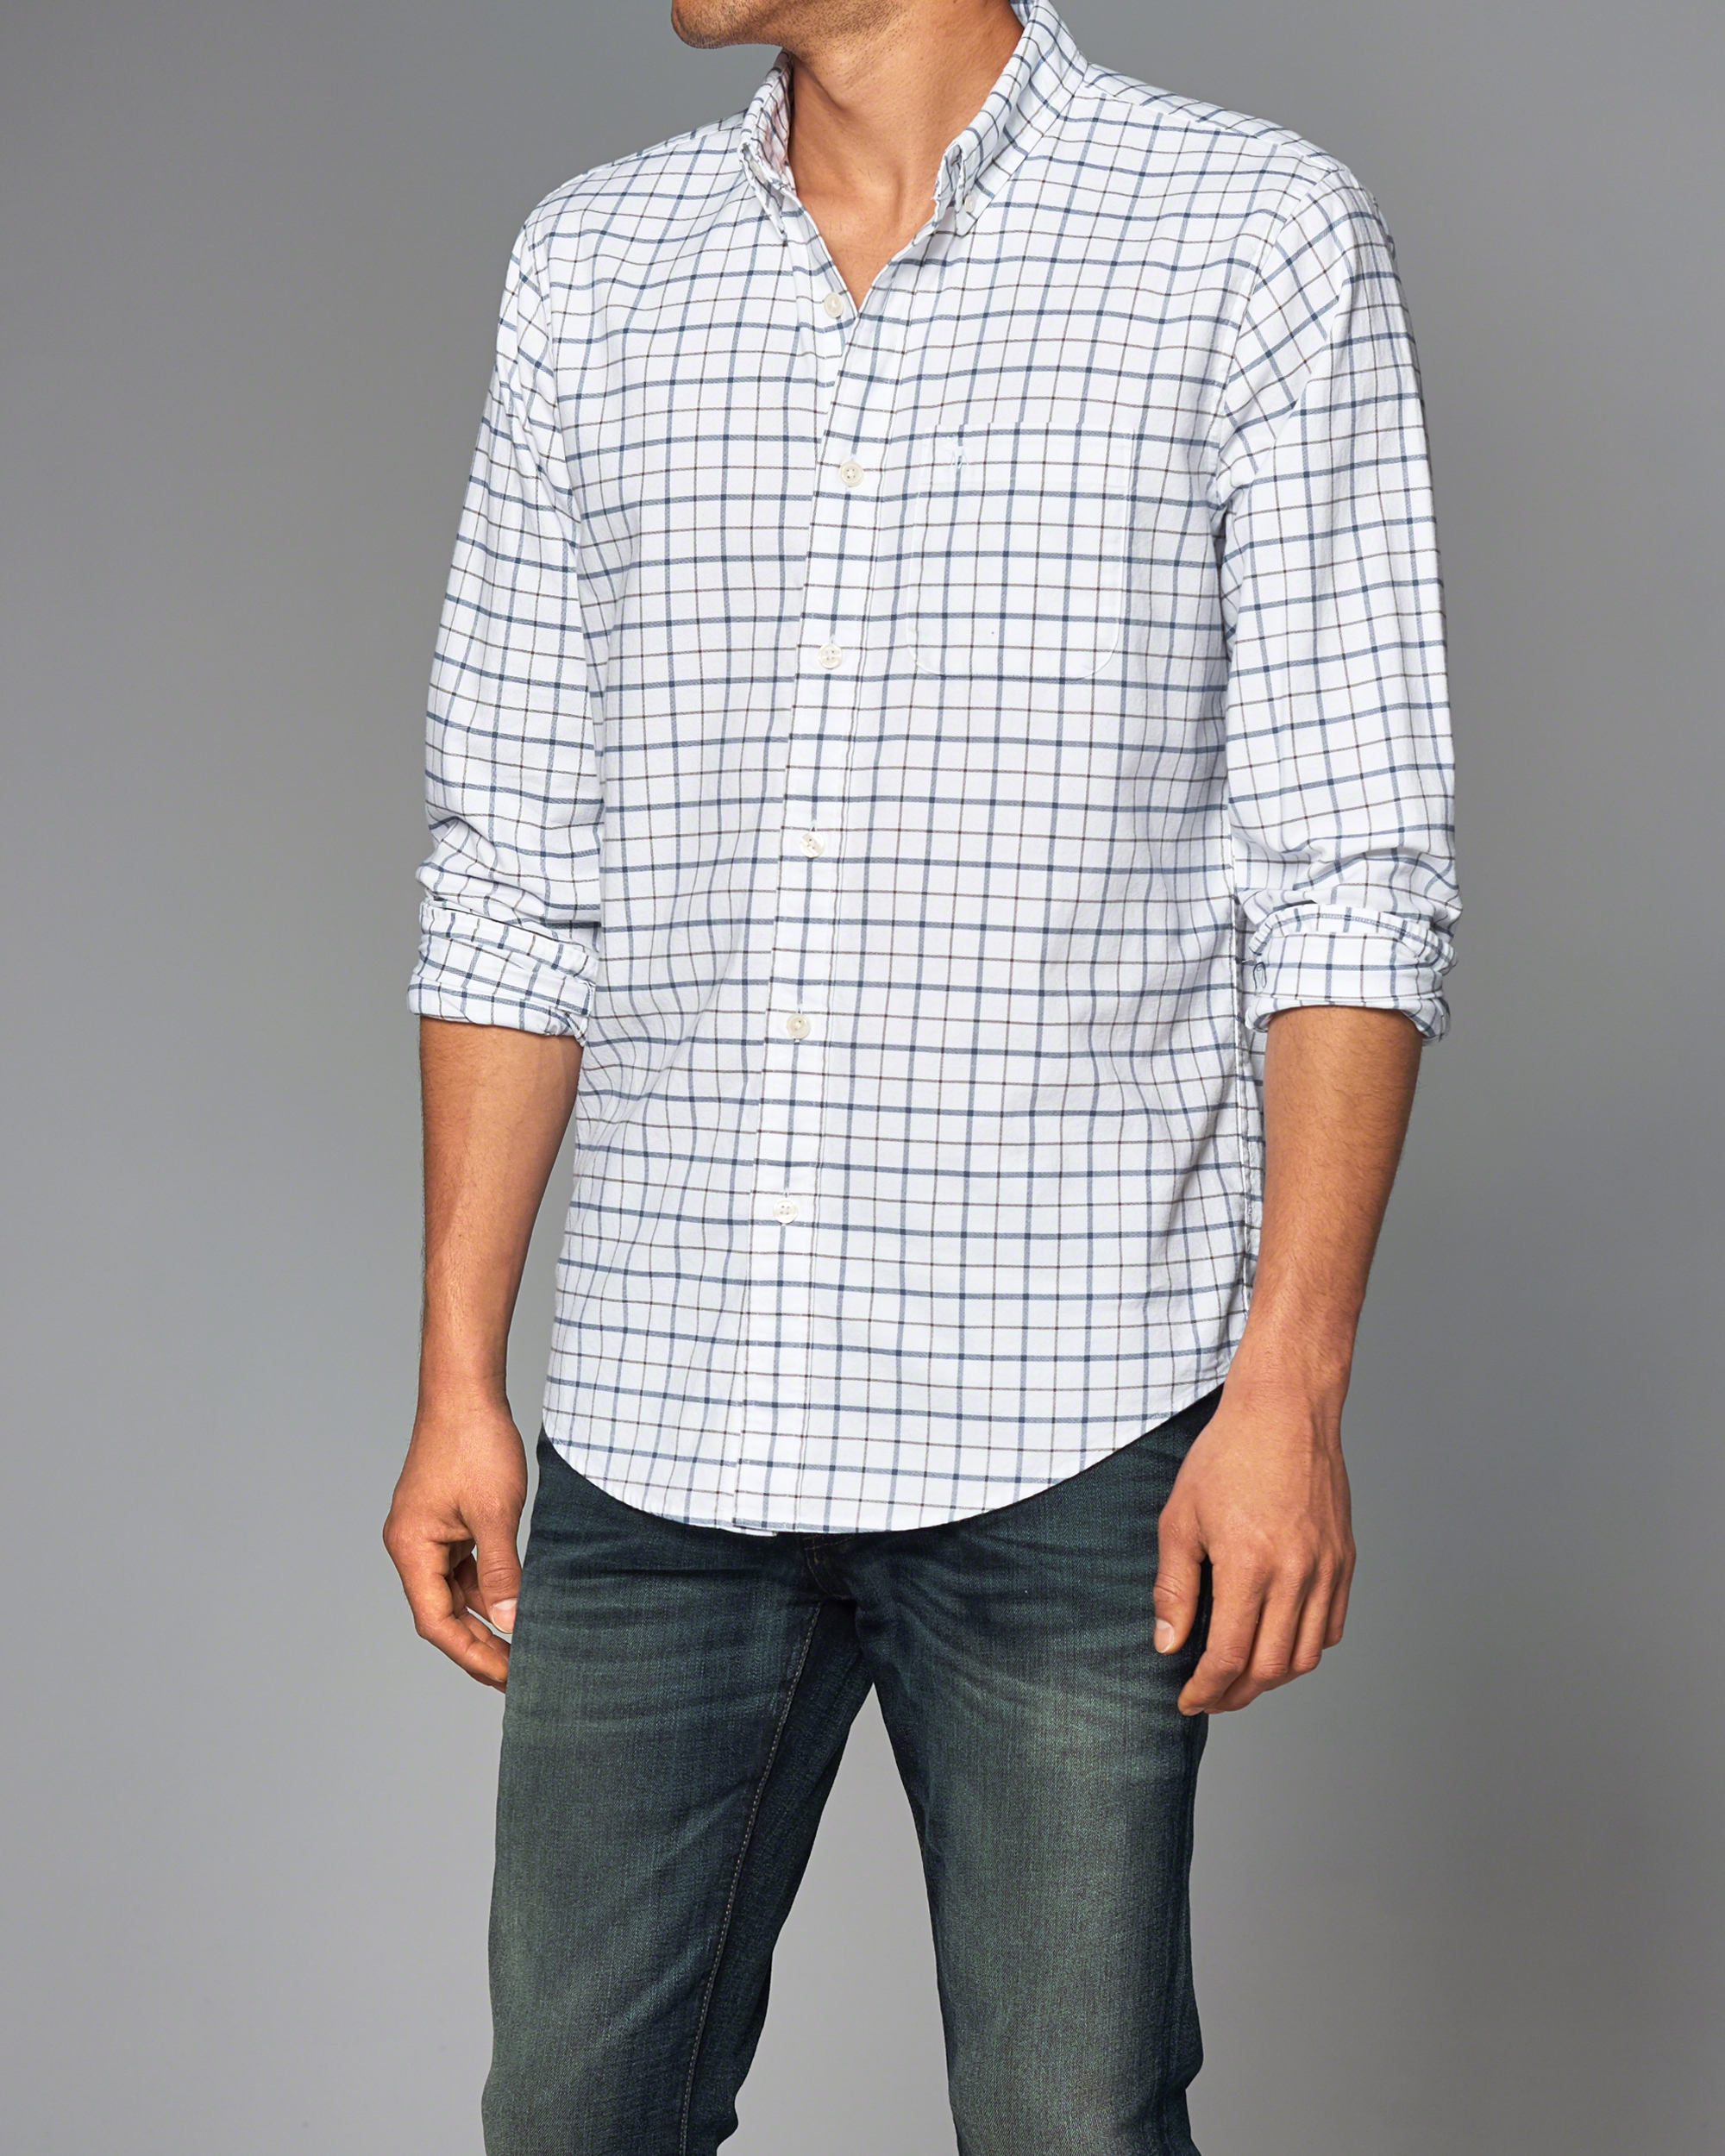 lyst abercrombie amp fitch plaid oxford shirt in white for men